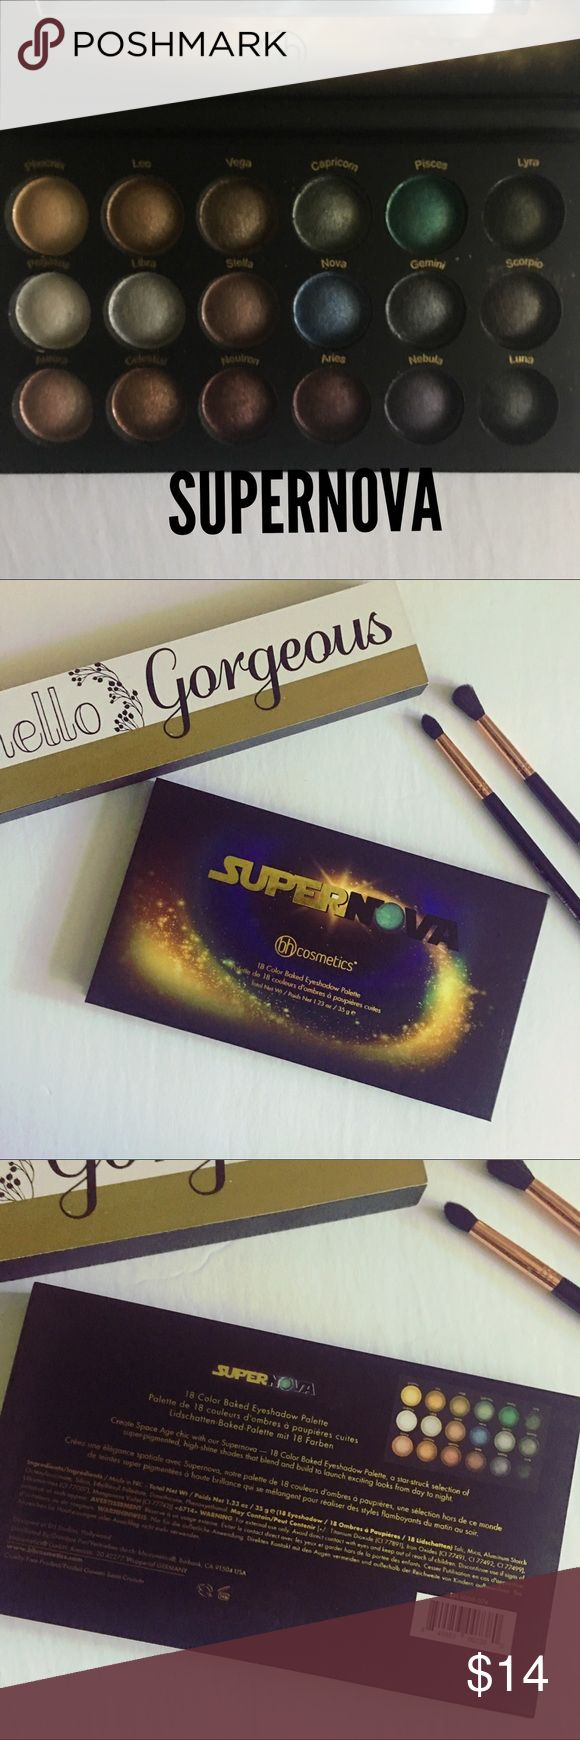 ⭐️SUPERNOVA EYESHADOW PALETTE⭐️ ⭐️SUPERNOVA EYESHADOW PALETTE⭐️BRAND NEW IN BOX! This star-struck selection of super-pigmented, high-shine shades includes moody blues and greens, eye-popping teal and turquoise, plus deep neutrals for definition. The ultra-soft shadows are buildable, blendable and guaranteed to put a sparkle in your eyes. Launch exciting looks from day to night -- the sky is the limit! (From bh cosmetics website) ⭐️BUNDLE & SAVE⭐️ bh cosmetics Makeup Eyeshadow